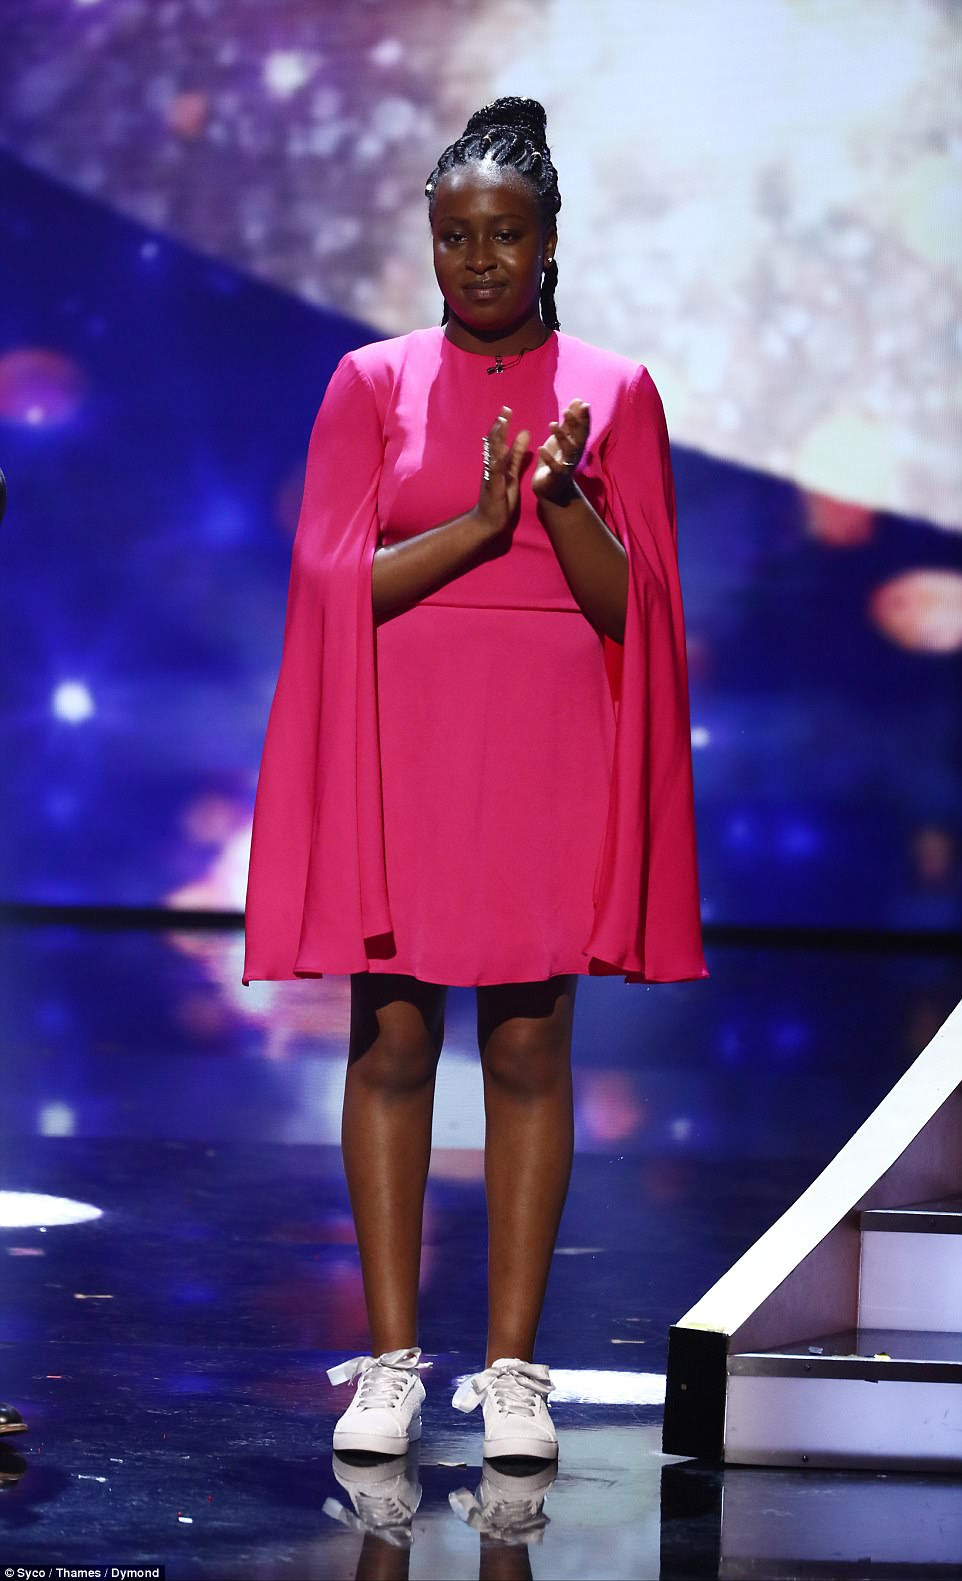 Songstress:The judges' wild card - who was picked to appear in the final after not getting enough votes to progress from the semi-finals - was Sarah Ikumu who wowed with her rendition of Andra Day's Rise Up